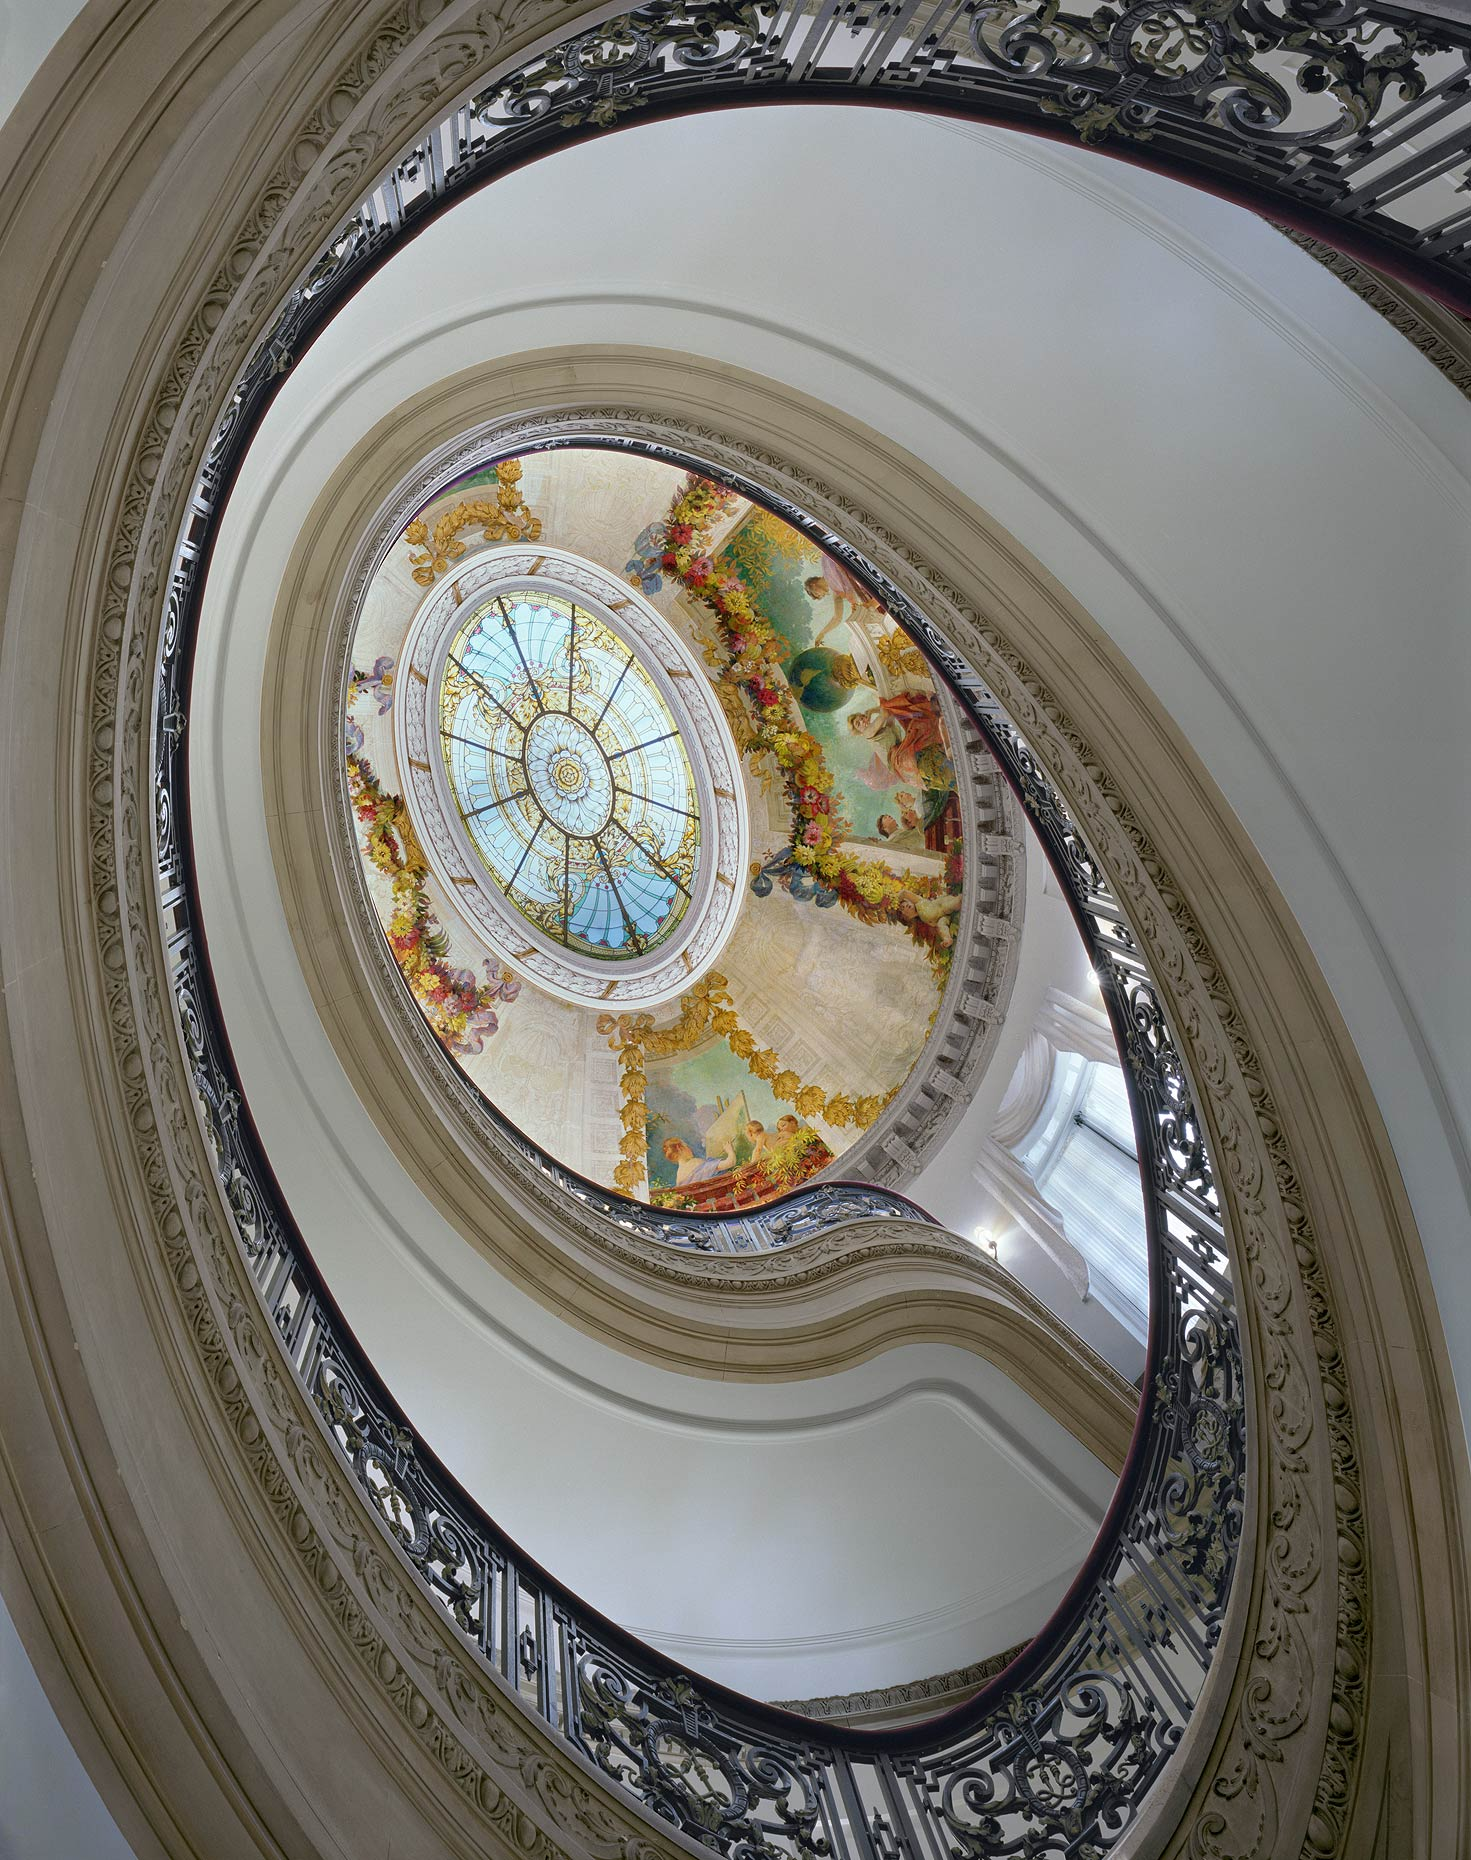 Rotunda, Convent of the Sacred Heart, 1 East 91st Street, New York City, 2015